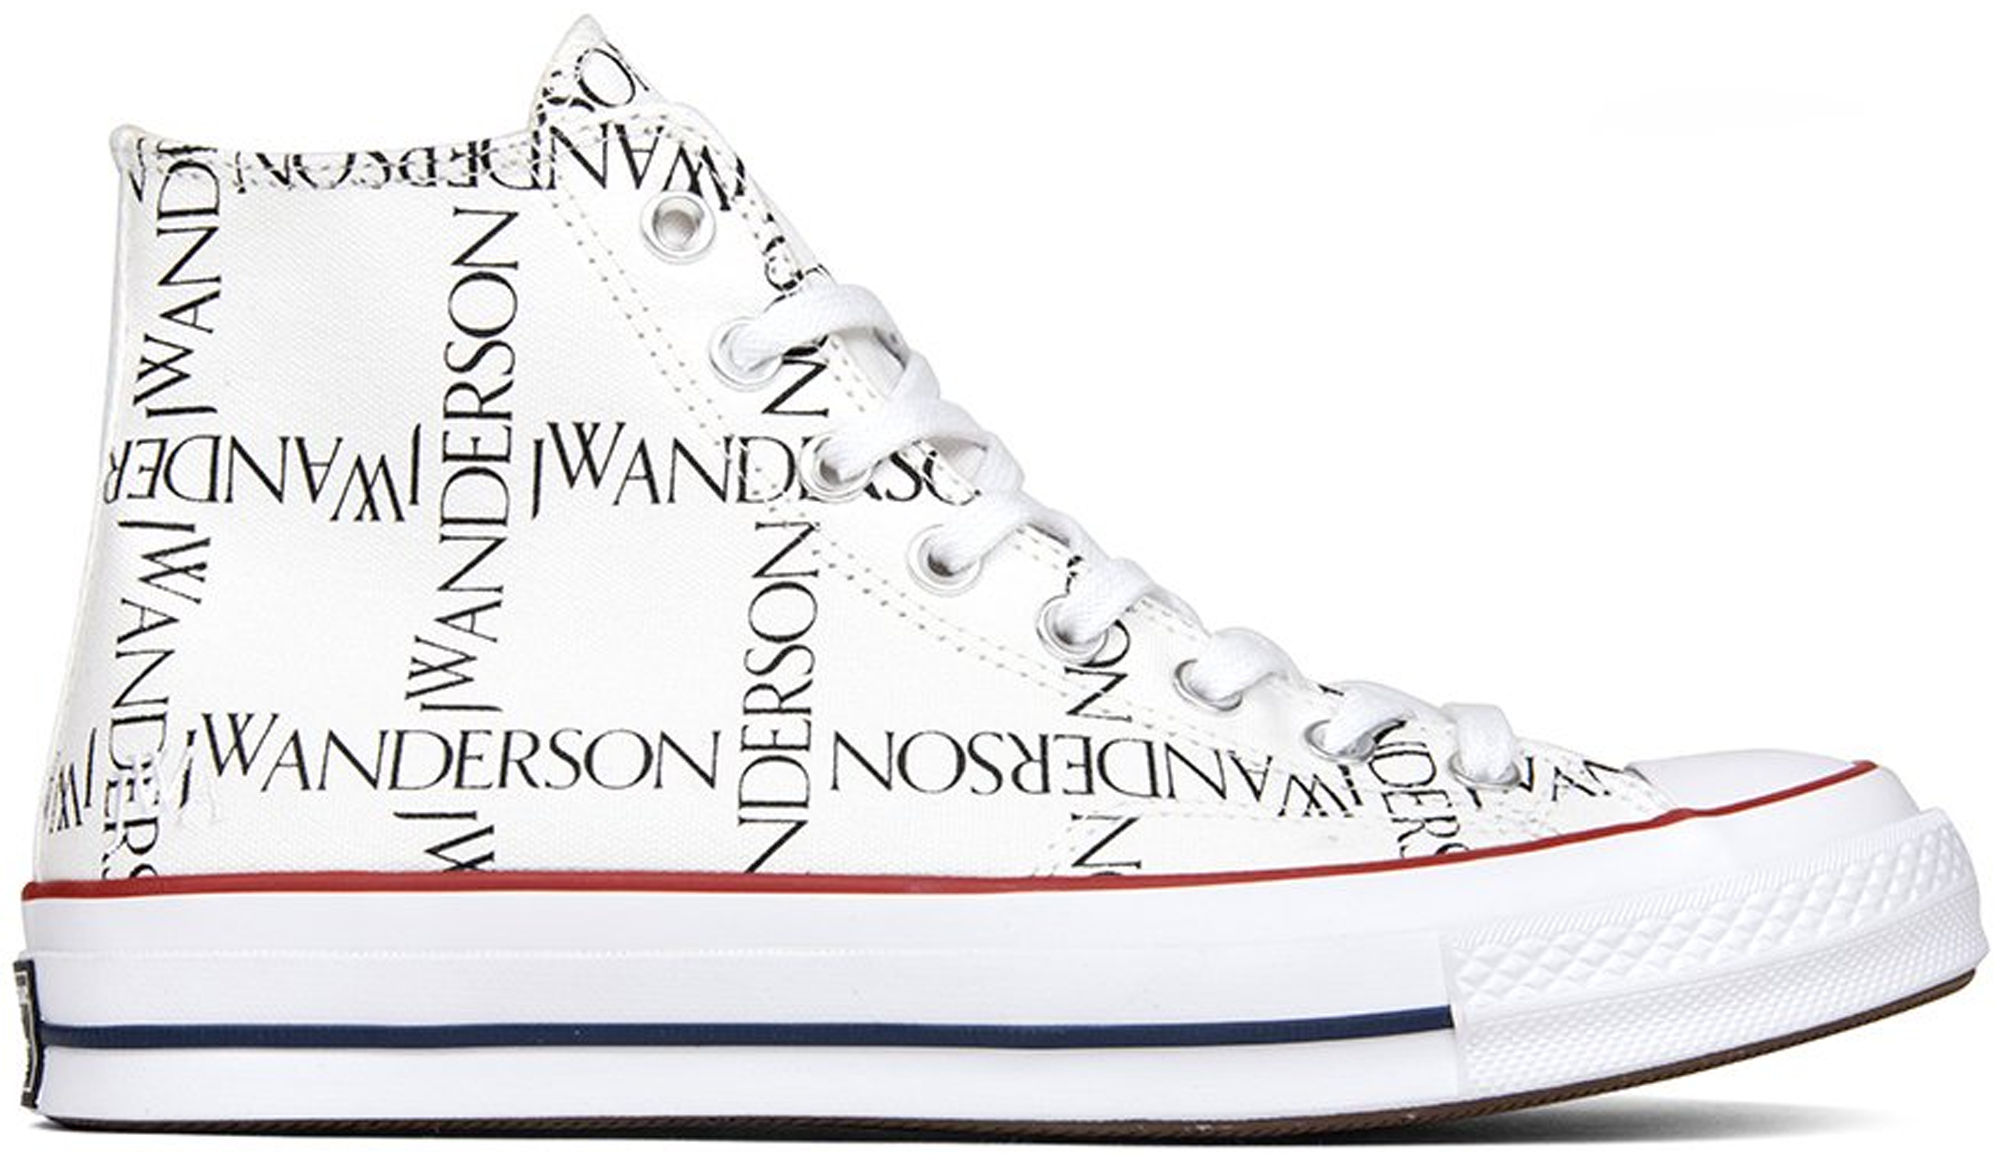 Converse Chuck Taylor All-Star 70s Hi Grid JW Anderson White